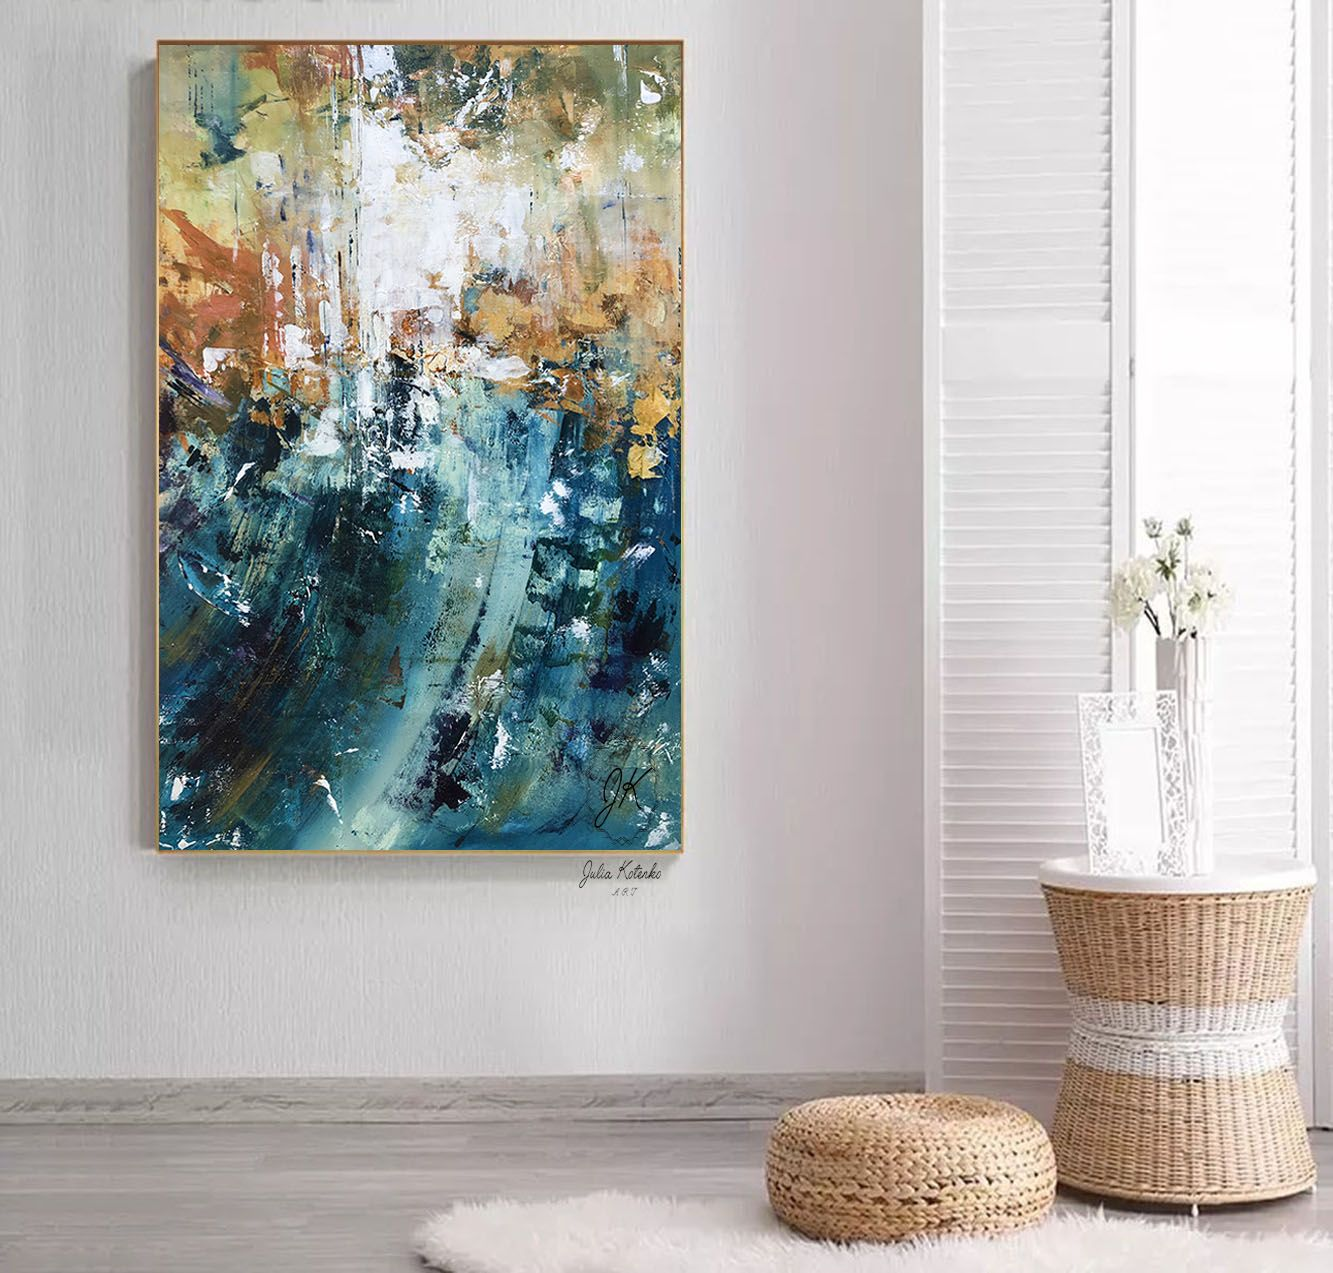 Over the Bed Decor, Oversized Canvas Art,Teal Blue Wall